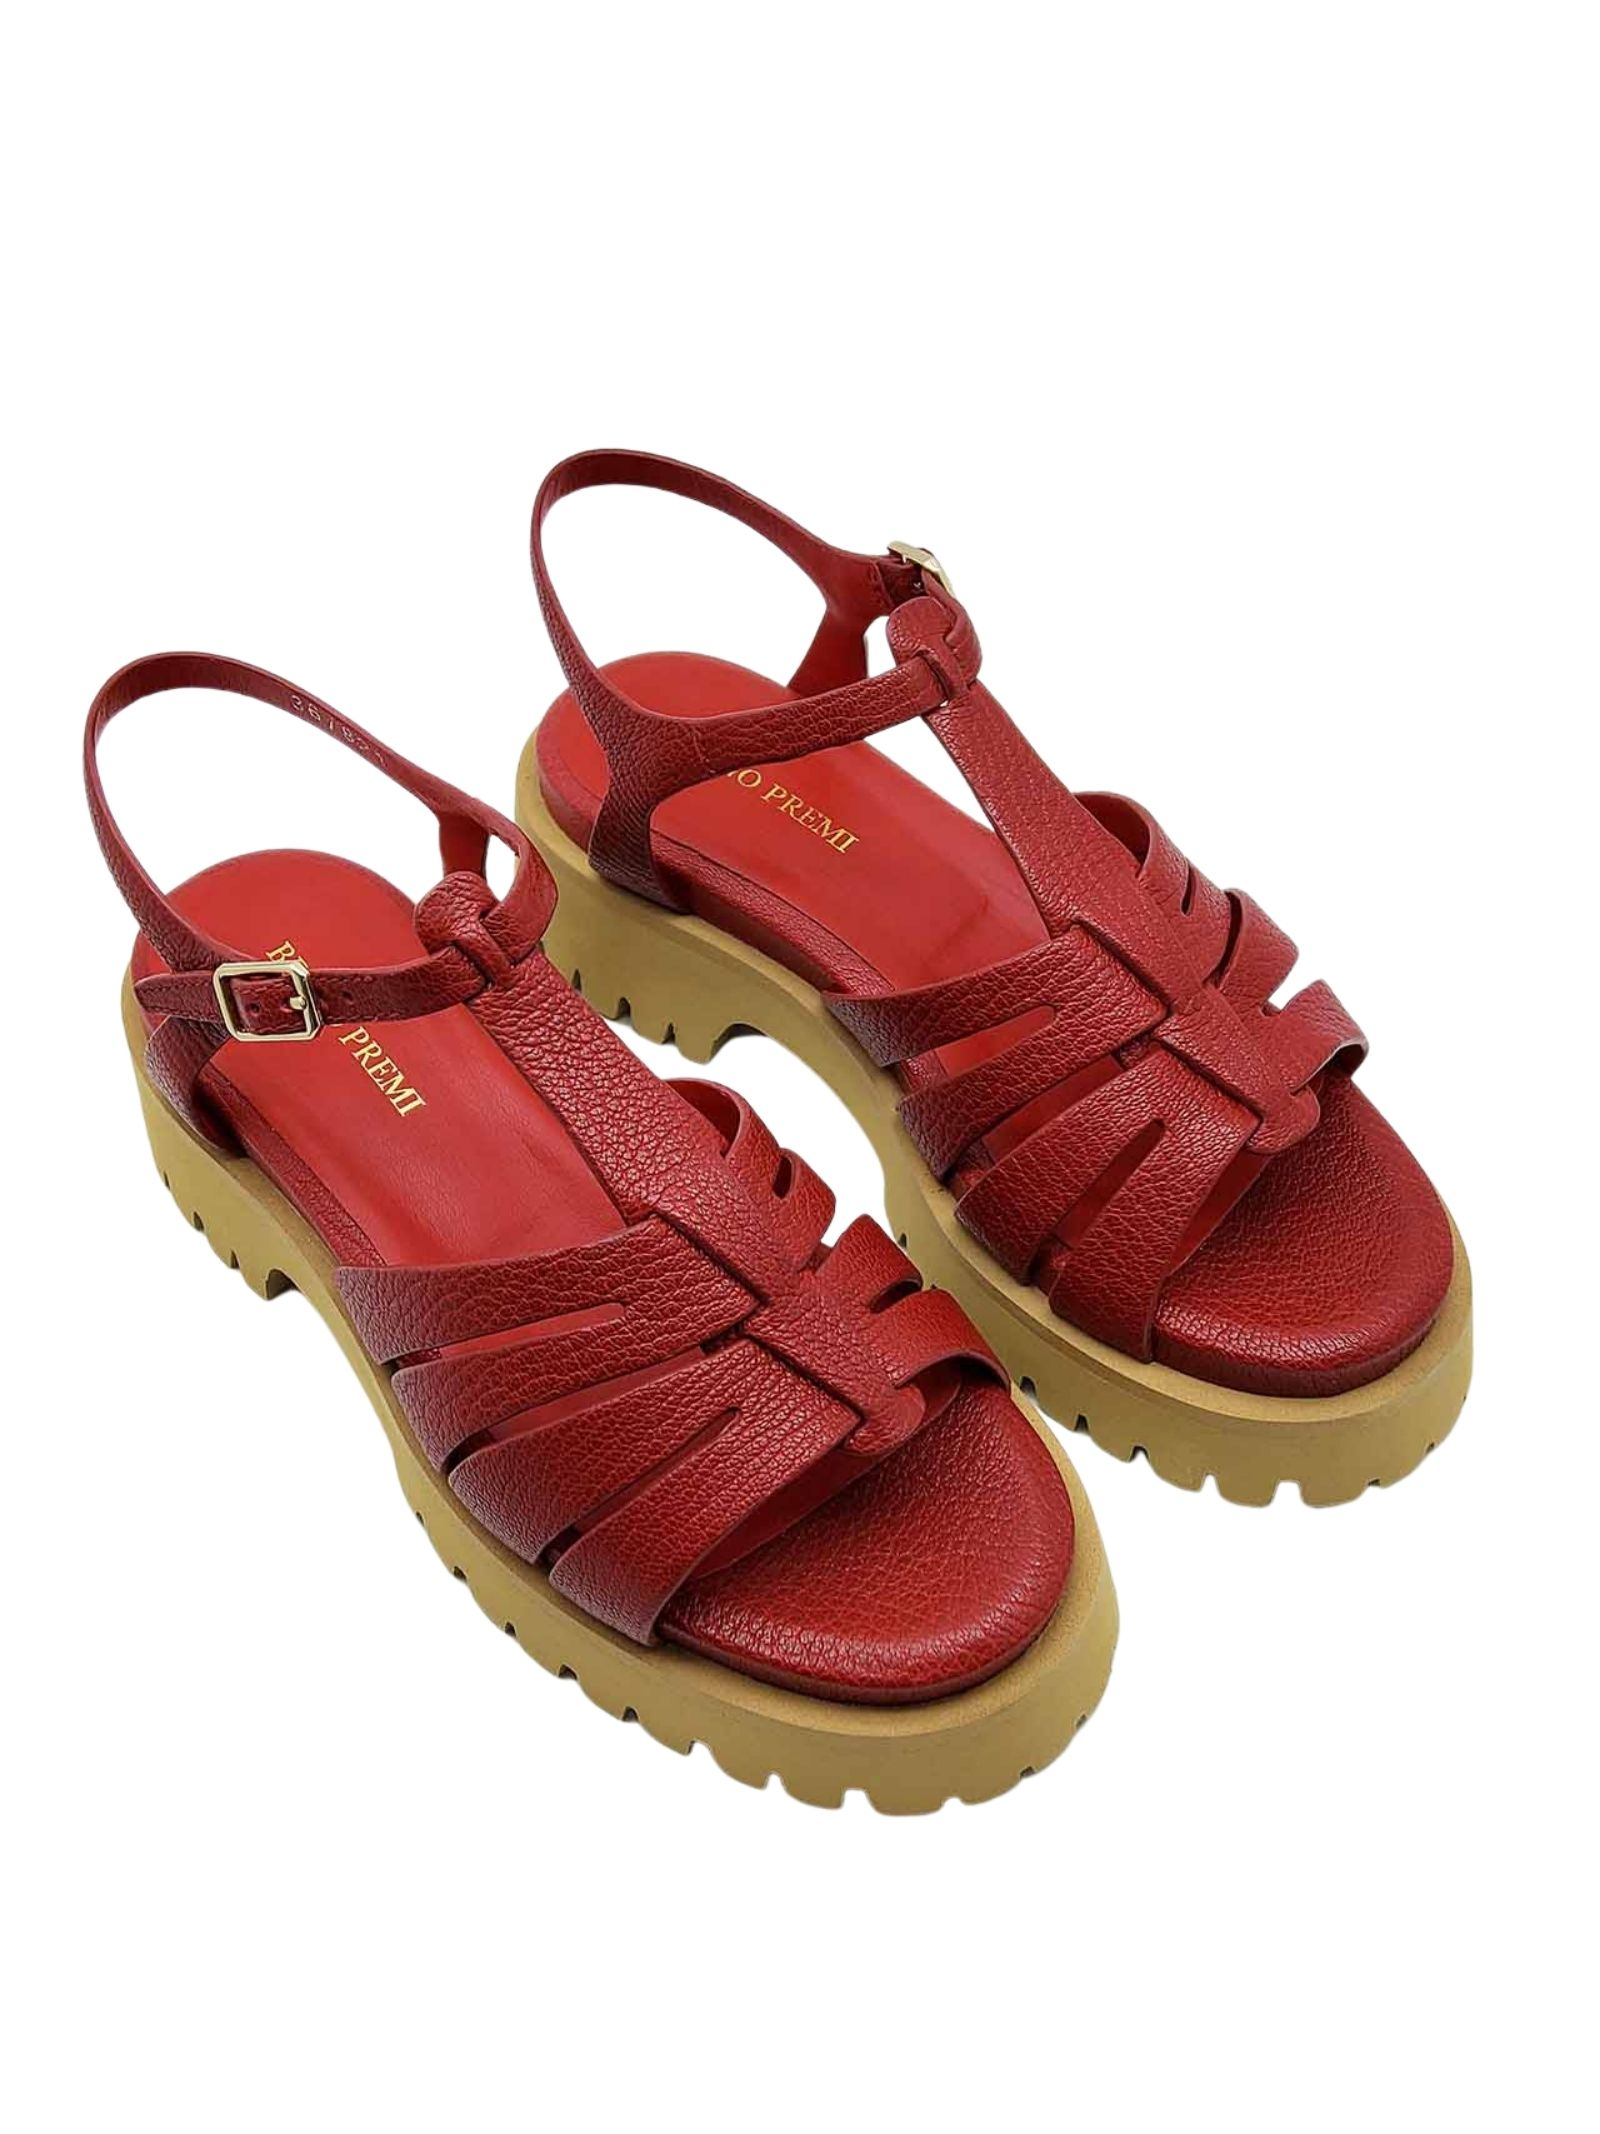 Women's Shoes Sandals in Red Leather with Tank Bottom and Ankle Strap Bruno Premi | Wedge Sandals | BB0202X017